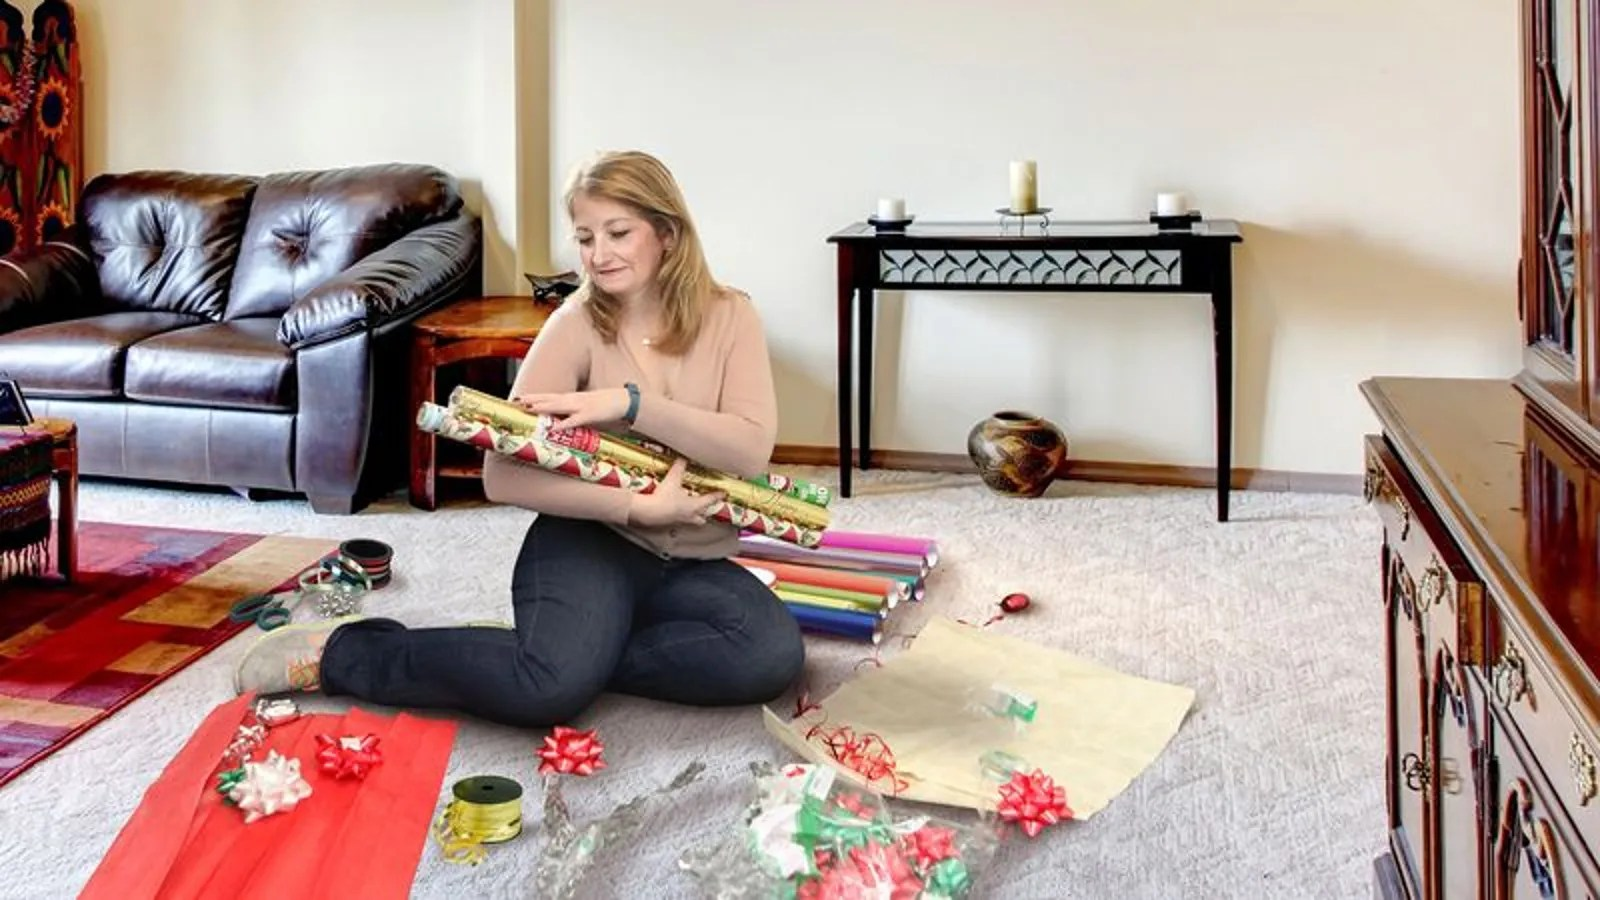 Mom Gathers Rolls Of Wrapping Paper Around Her To Stroke